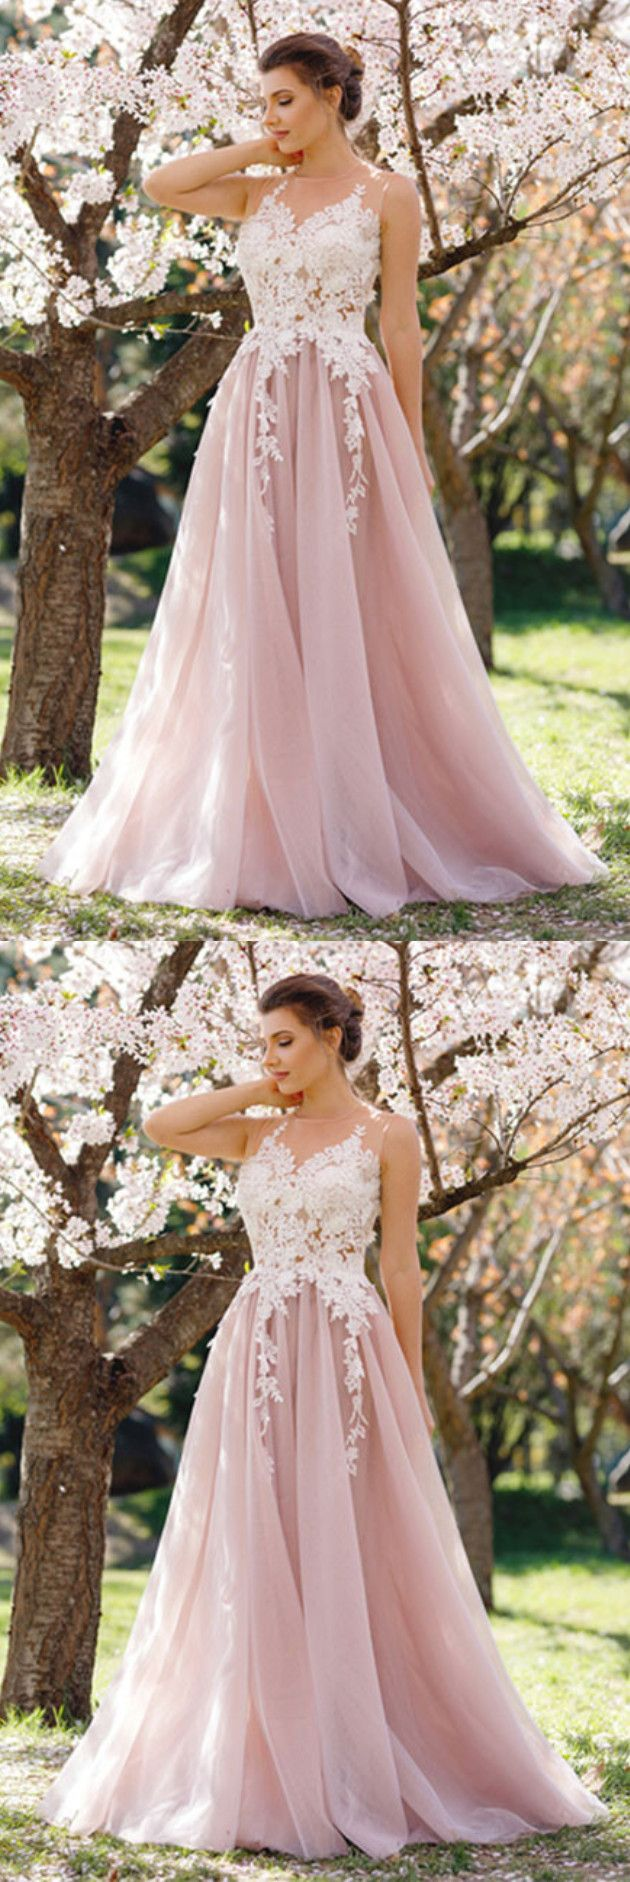 Elegant A-Line Jewel Blush Tulle Long Prom Dresses with Lace,Charming Formal Dresses